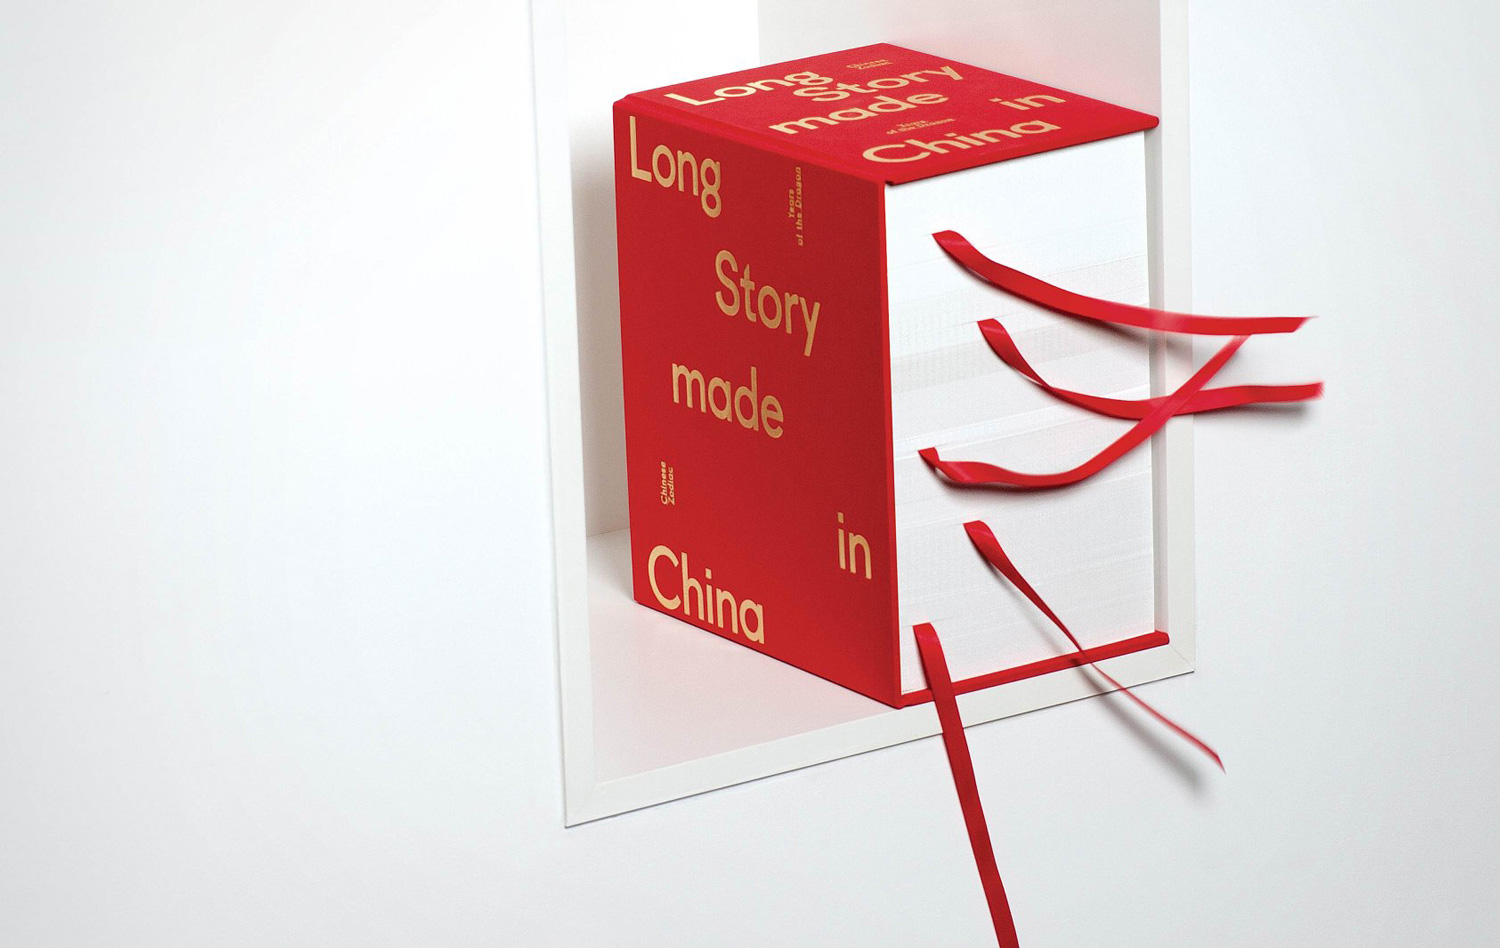 Long Story China, Deign by Toko | Yellowtrace